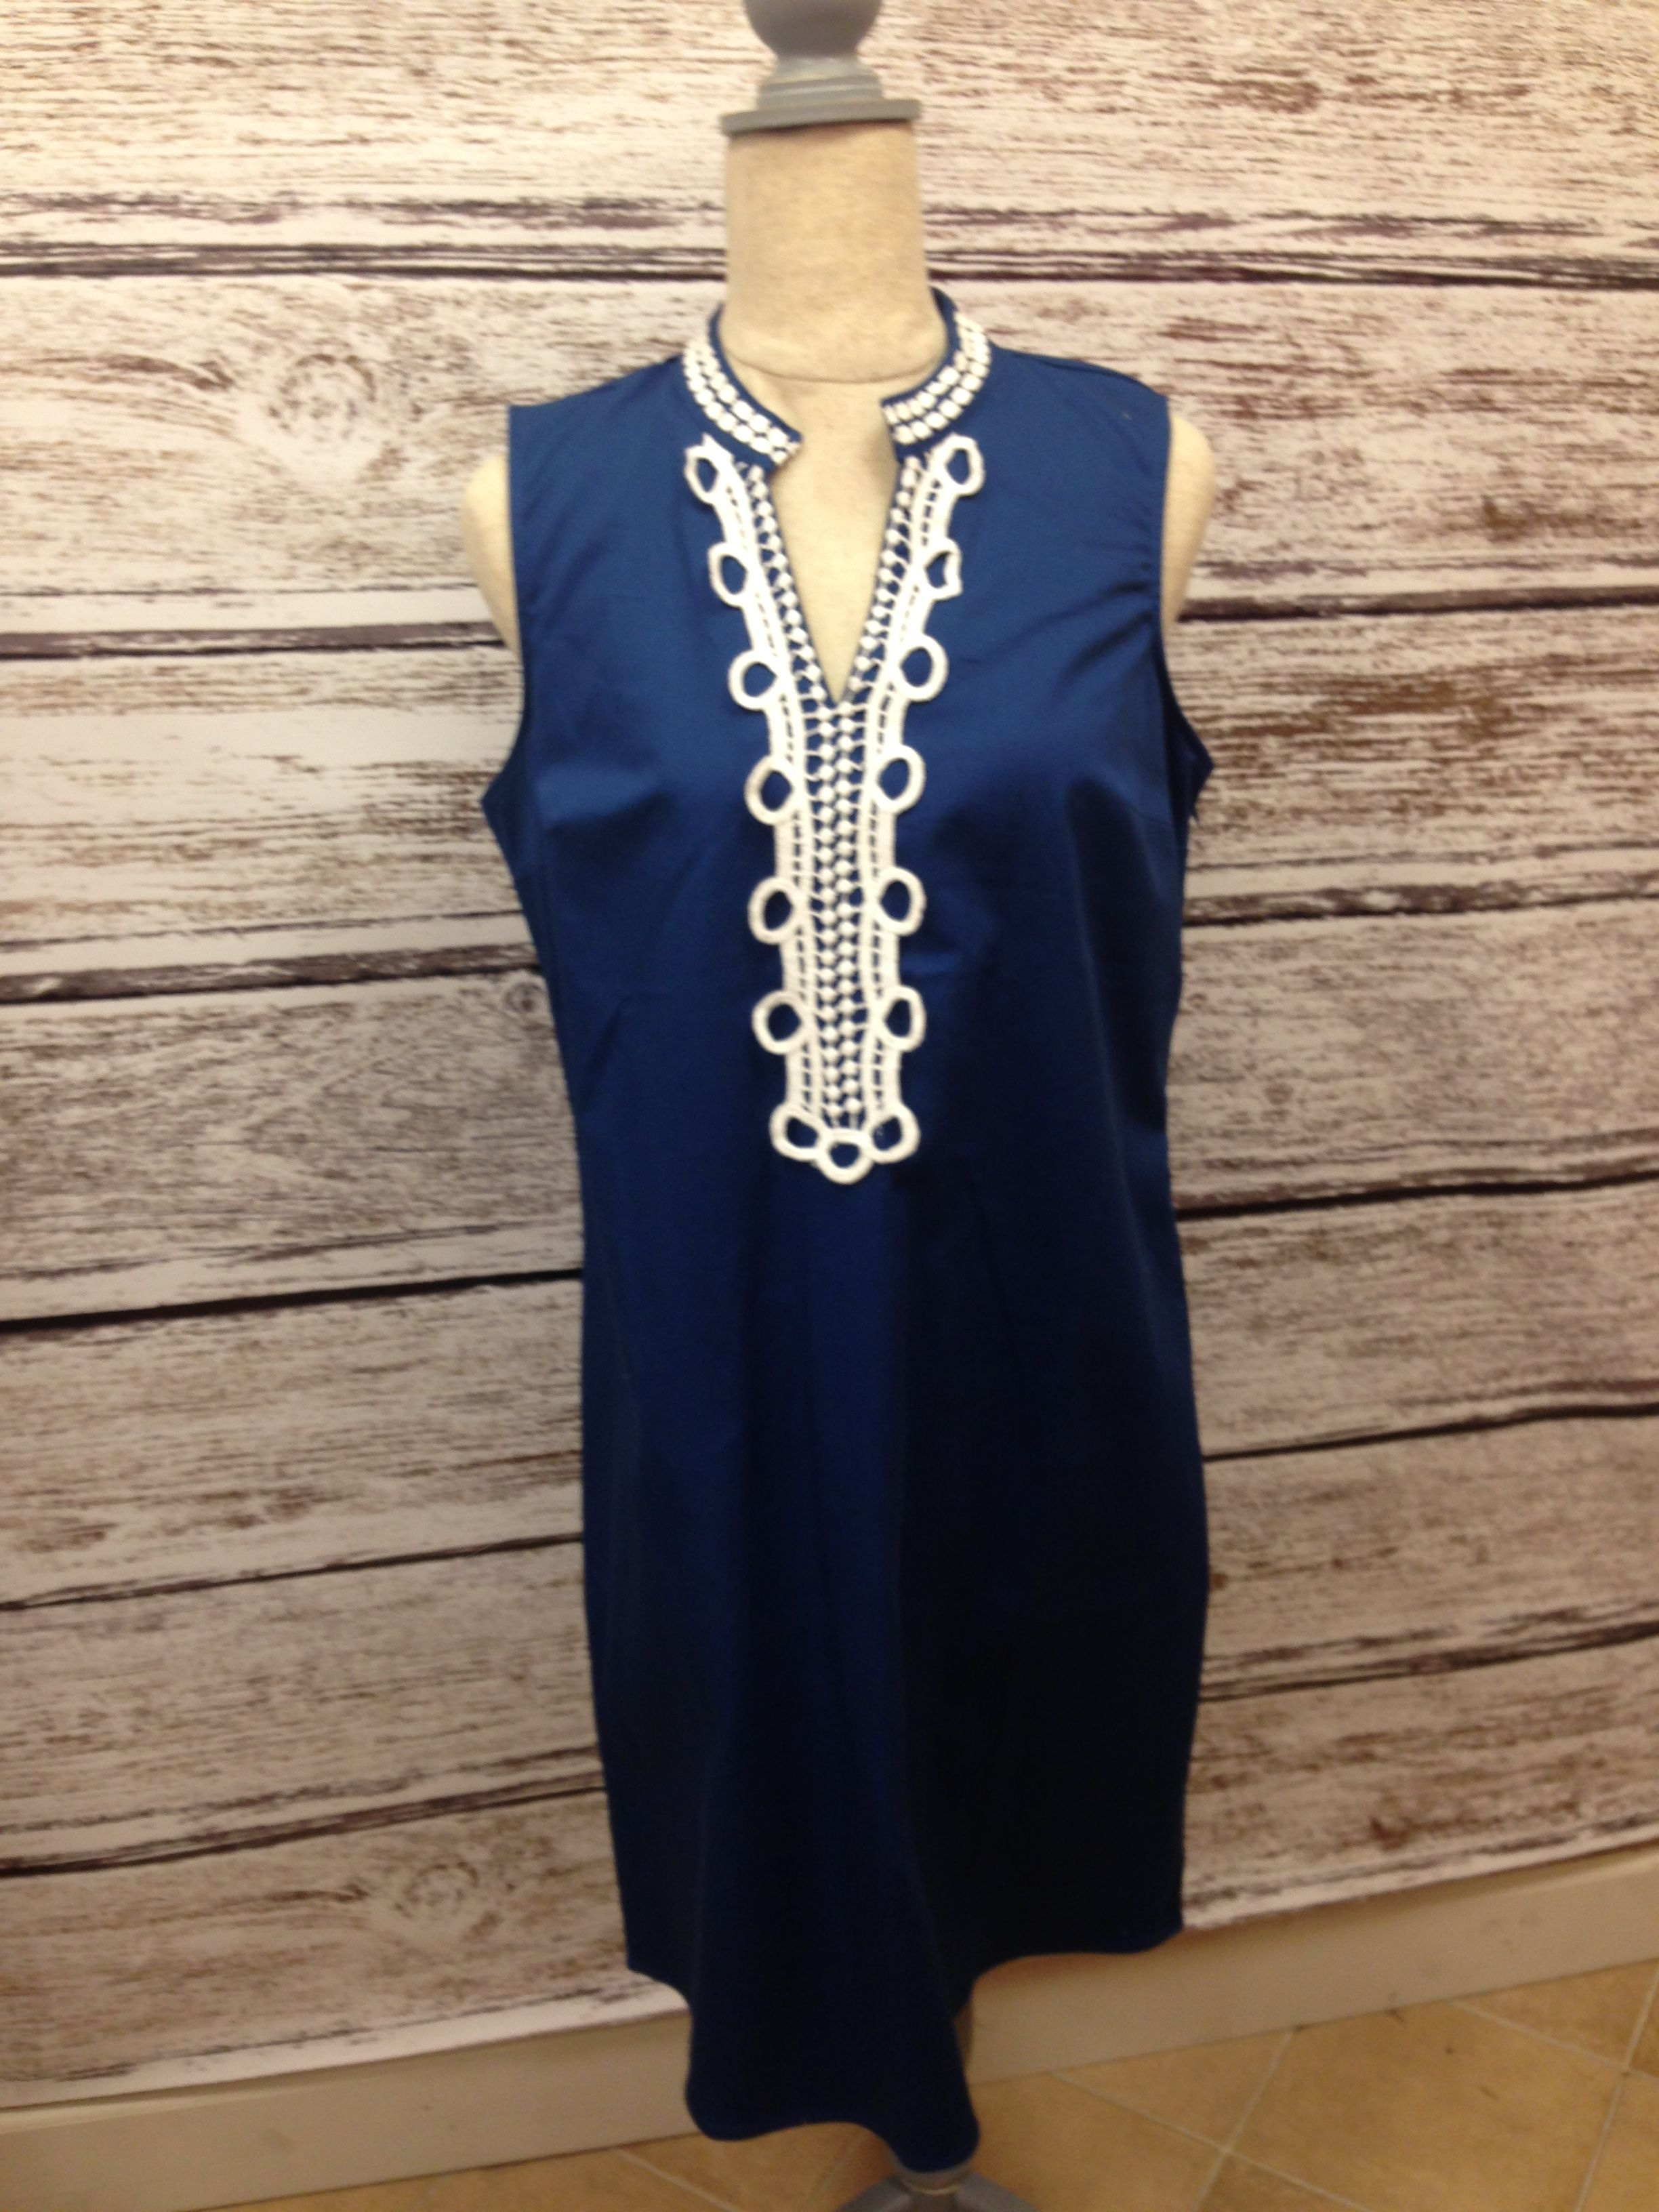 We love this sleeveless dress and it is available at Ace